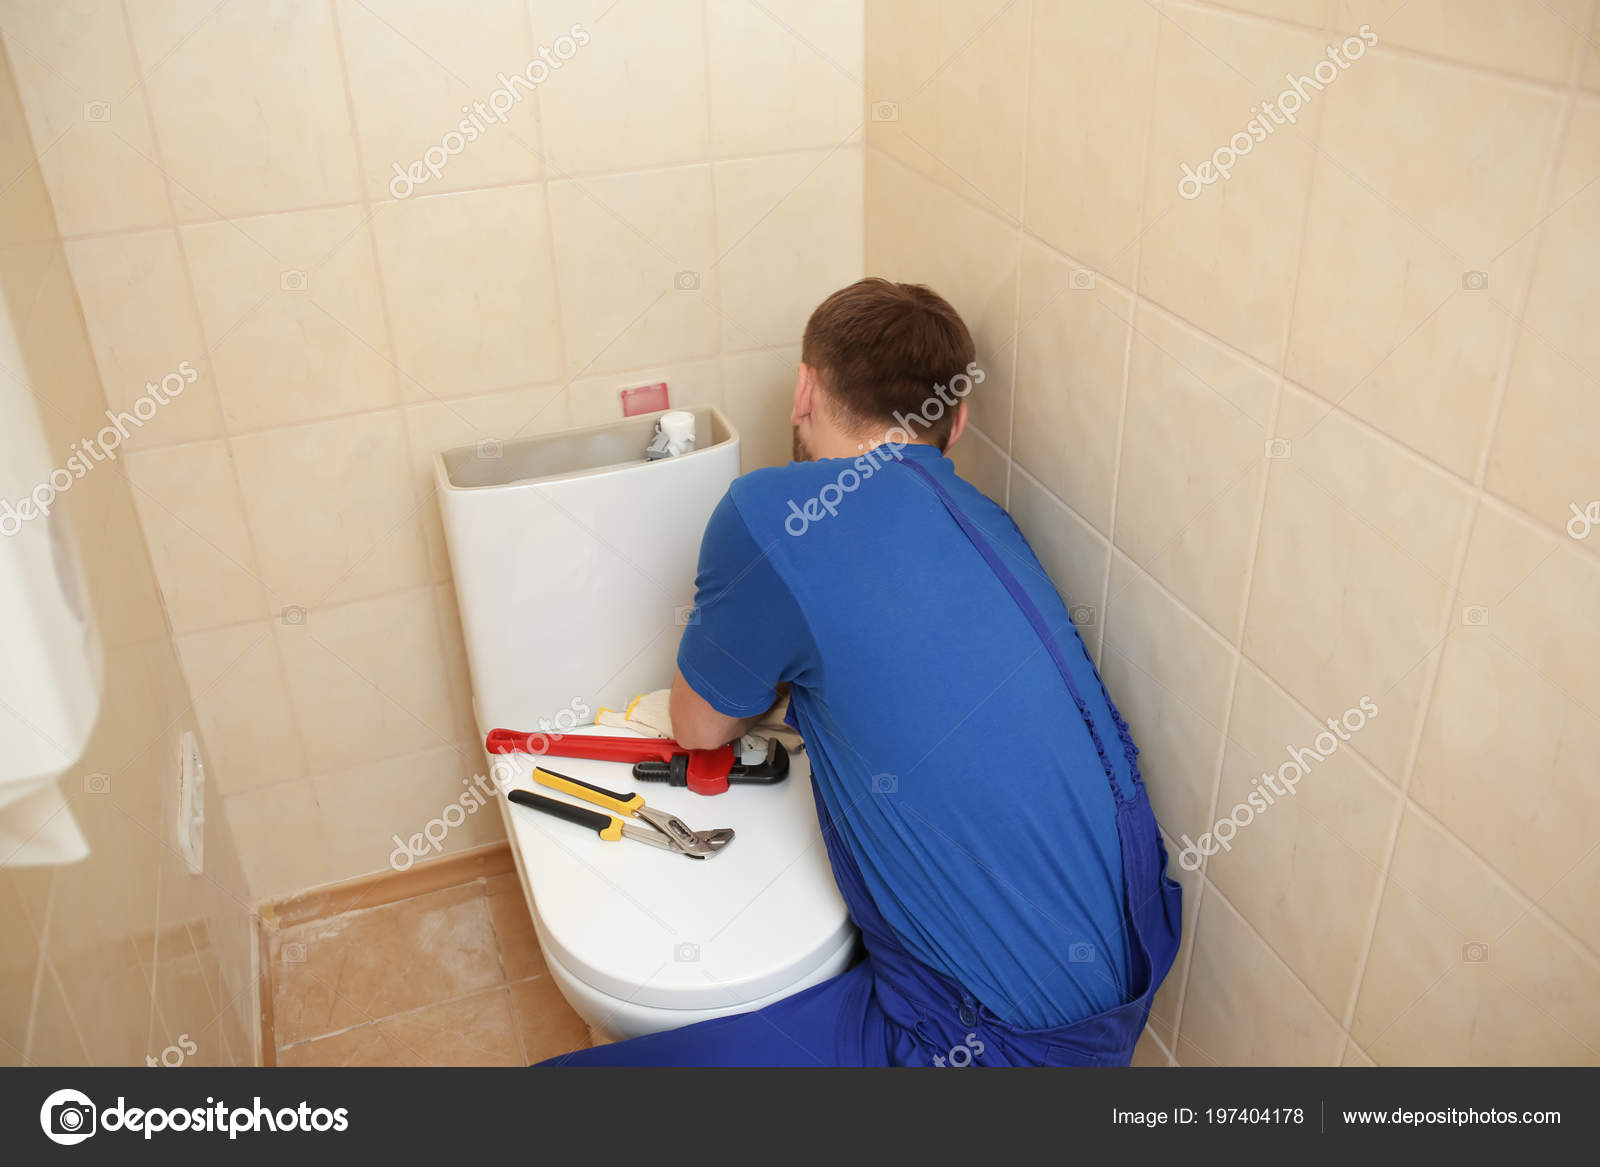 Image result for professional plumber toilet